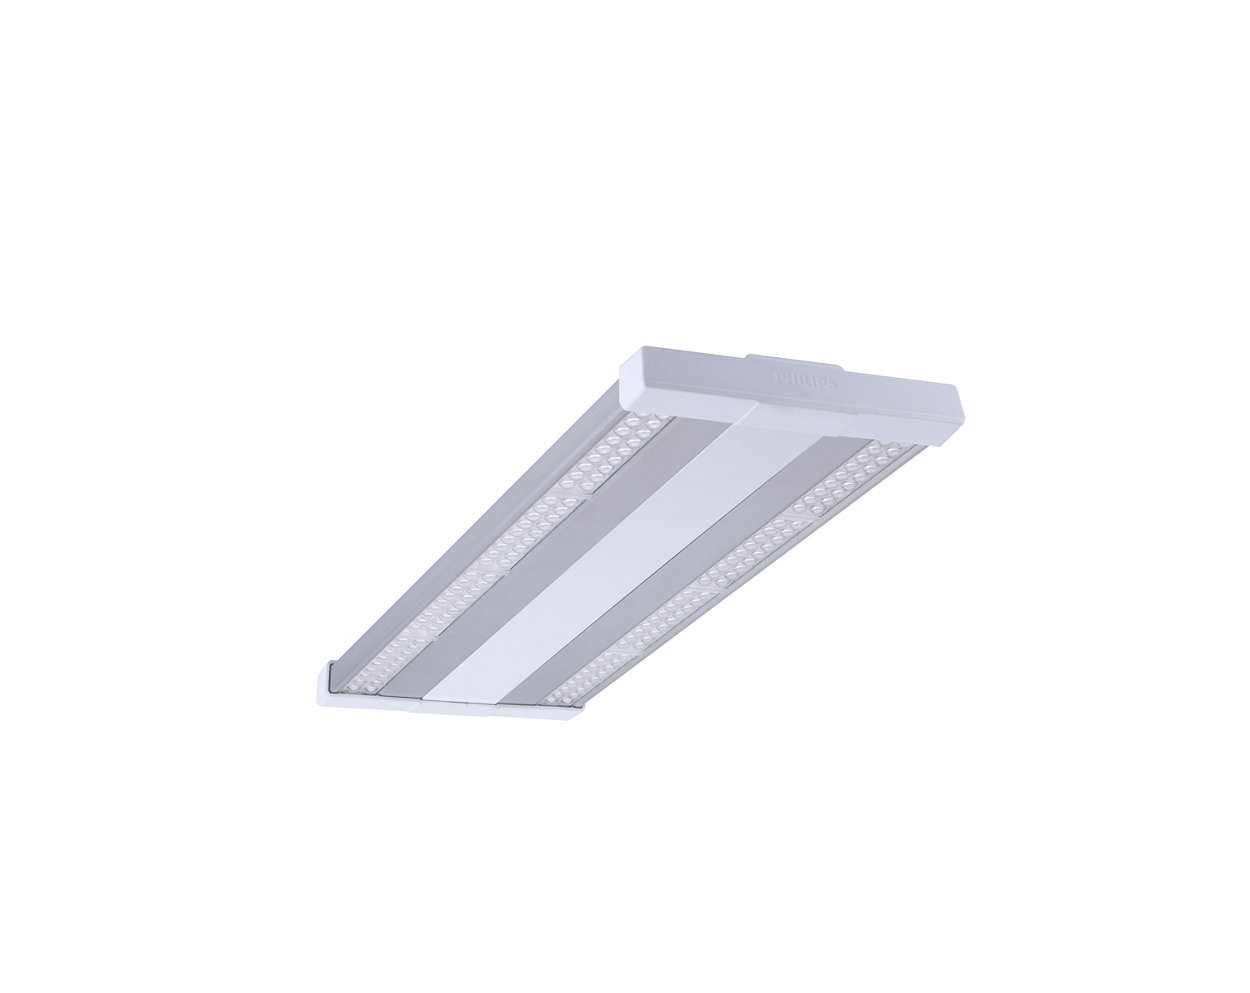 Innovation meets SimplicityIntelligent lighting revolutionises High Bay illumination